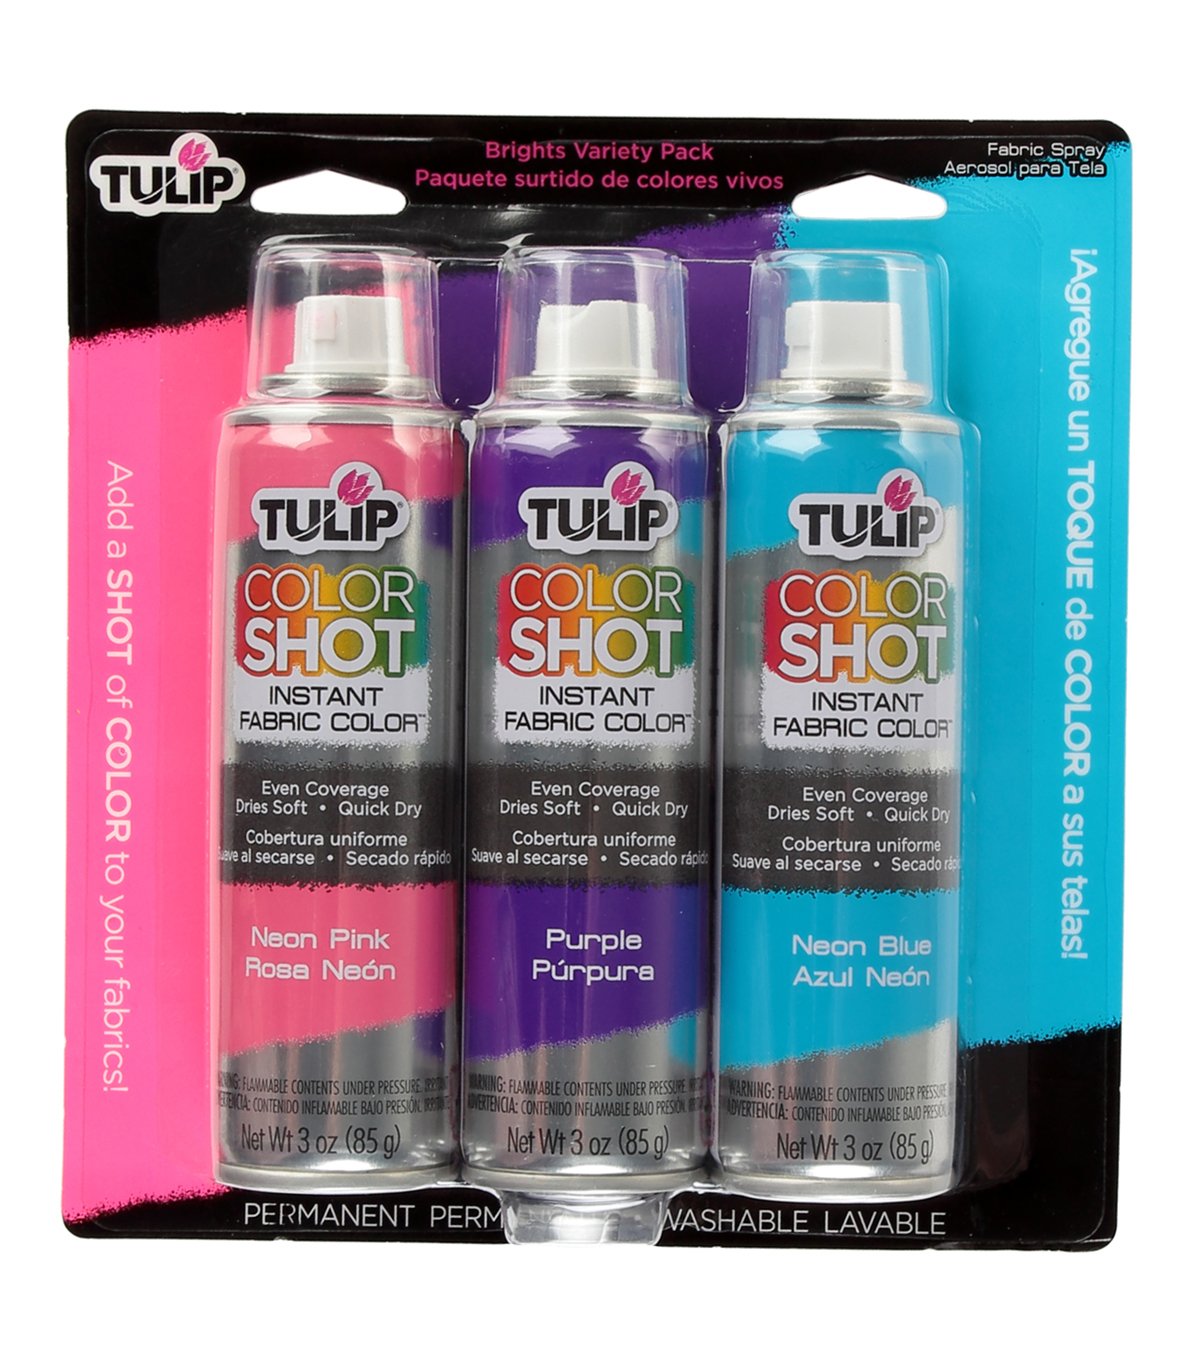 Tulip ColorShot Instant Fabric Color Spray 3pk - Brights